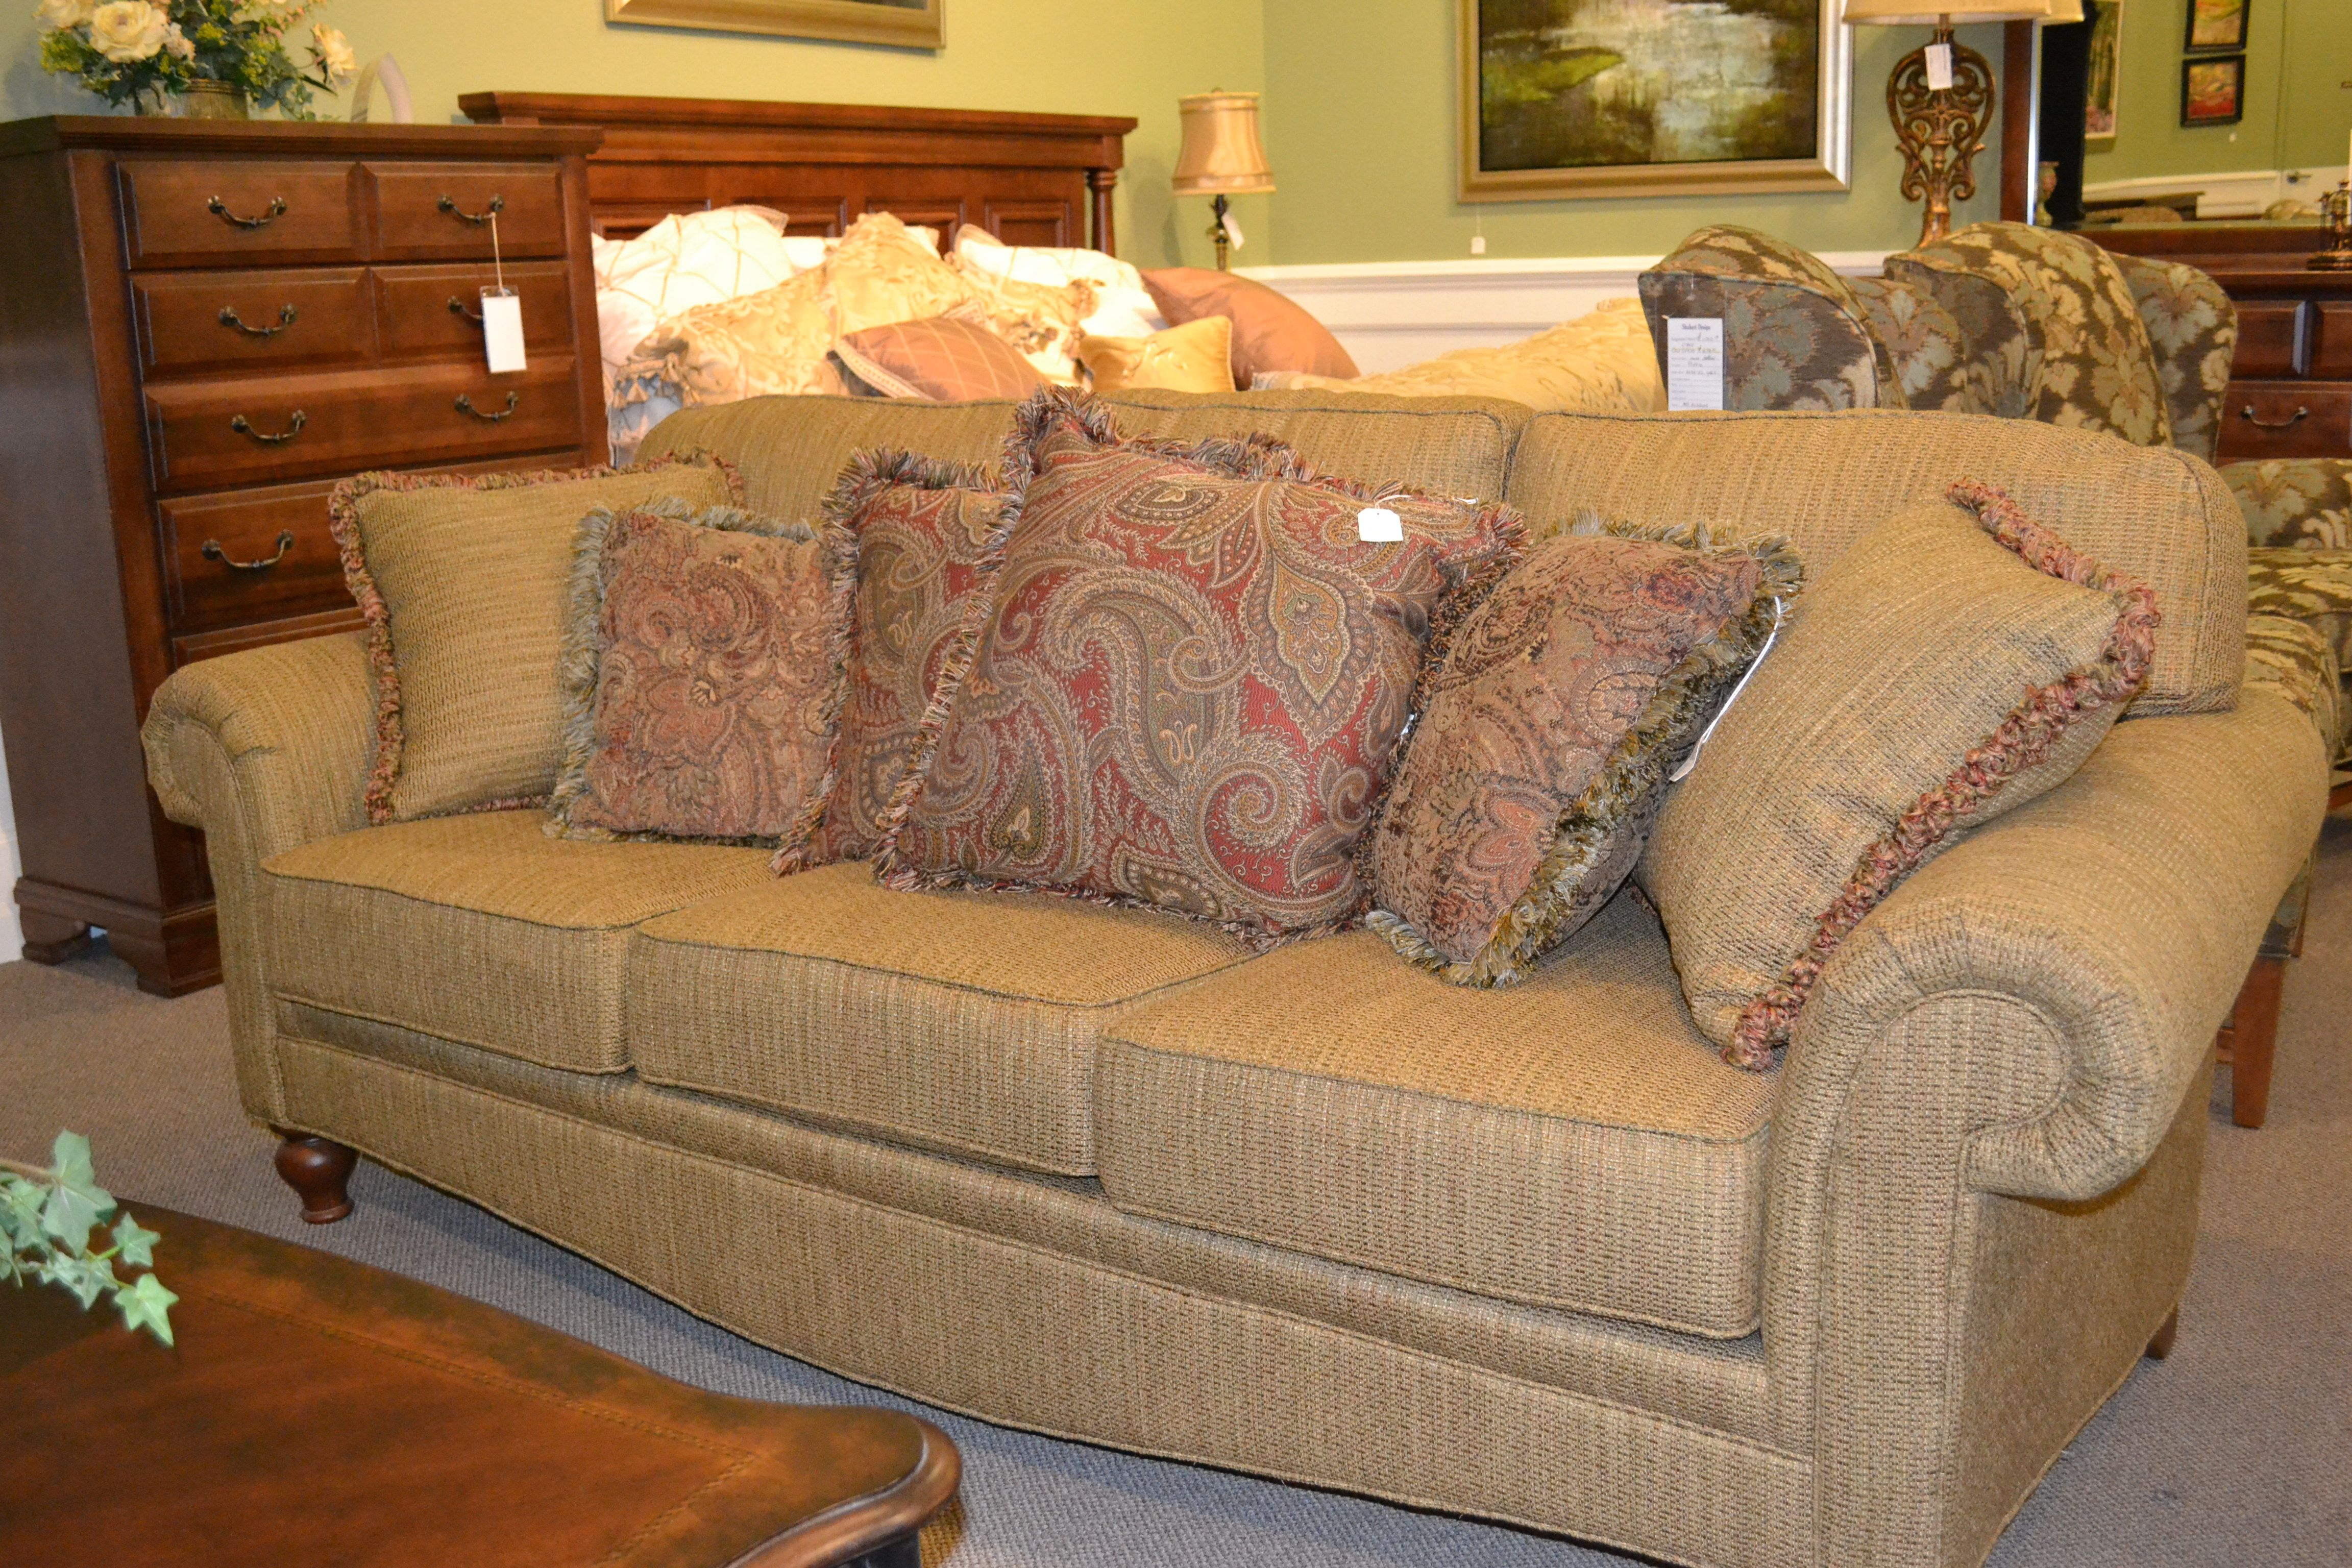 Woodmark #couch Available At #Shubert Design In #SaintLouis!